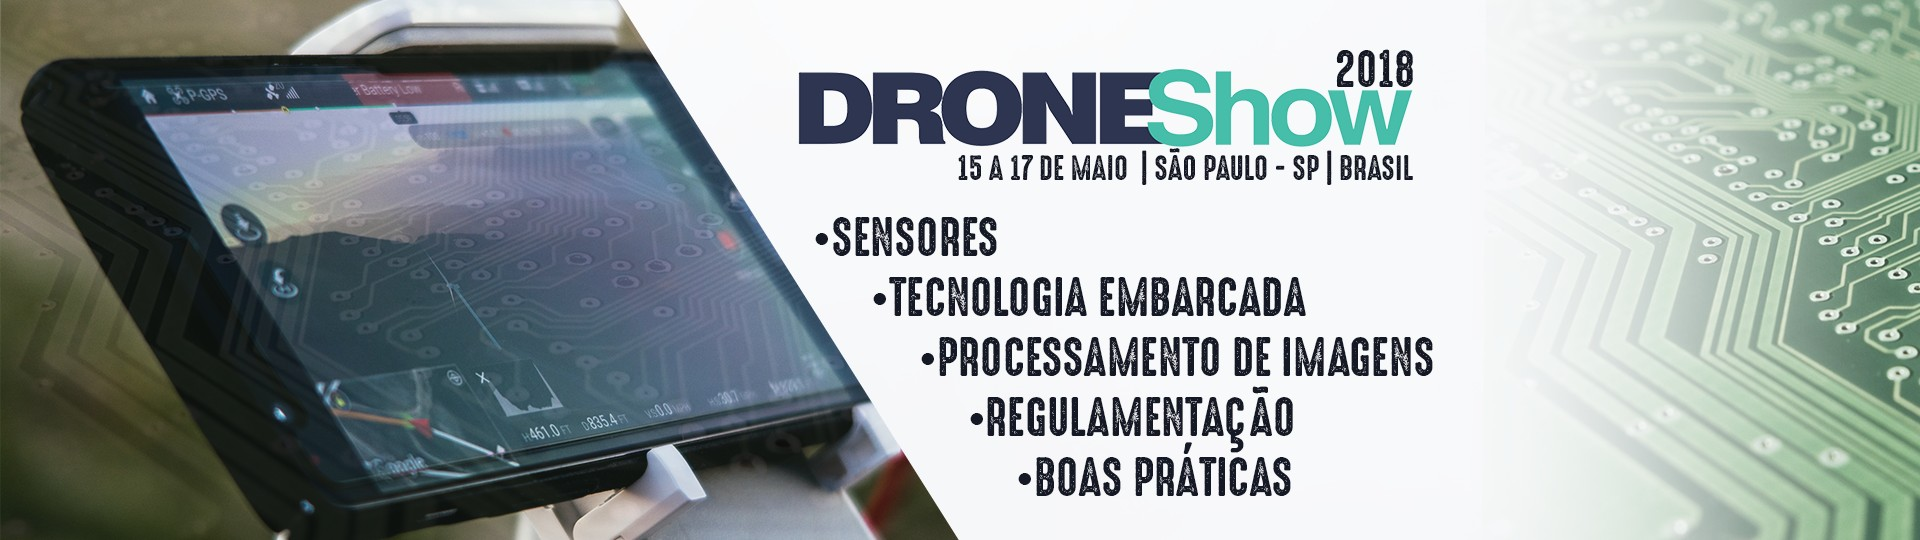 droneshow2018a